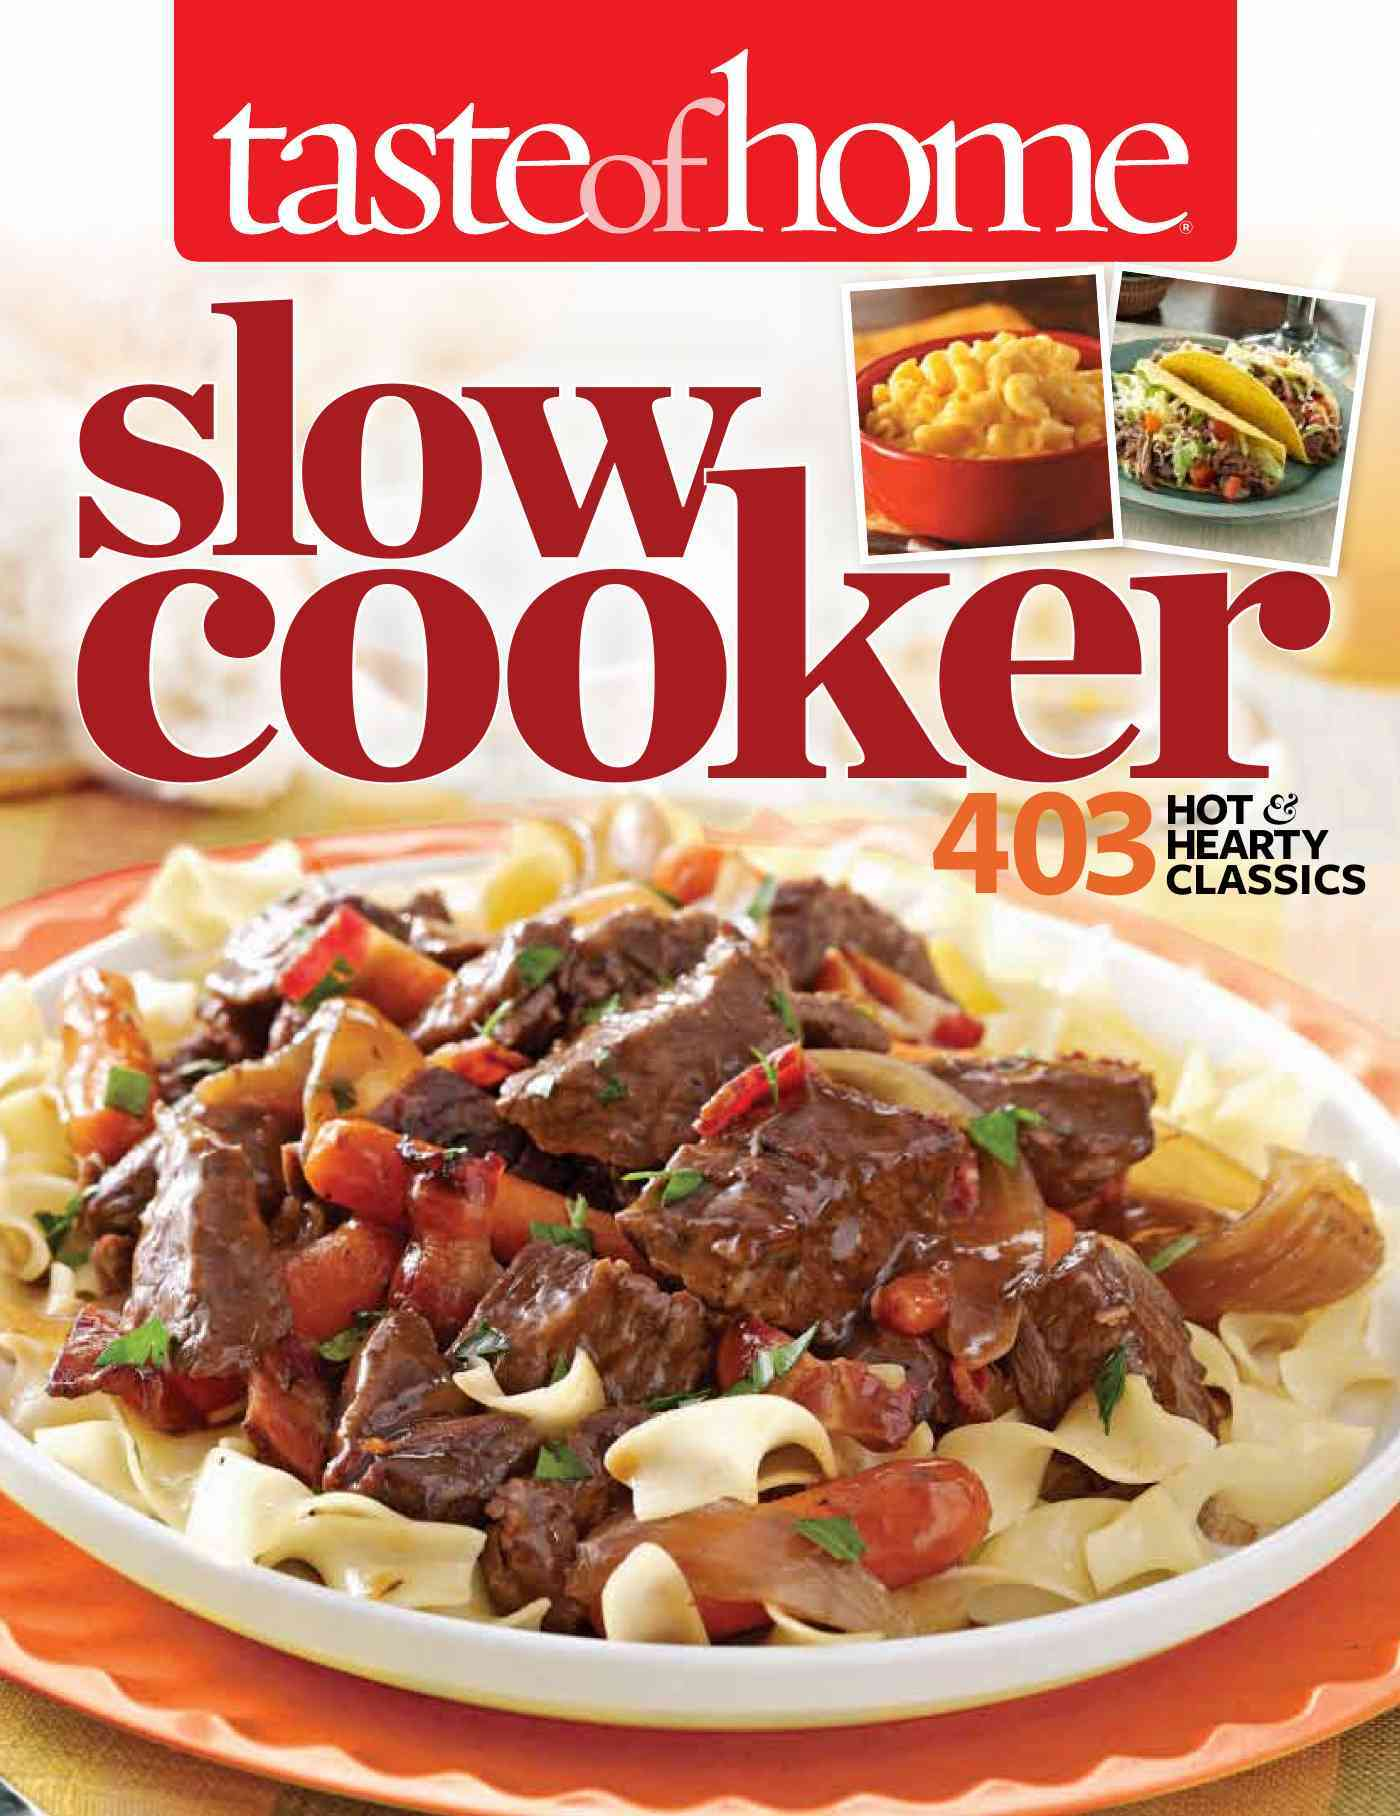 Taste of Home Slow Cooker By Taste of Home (COR)